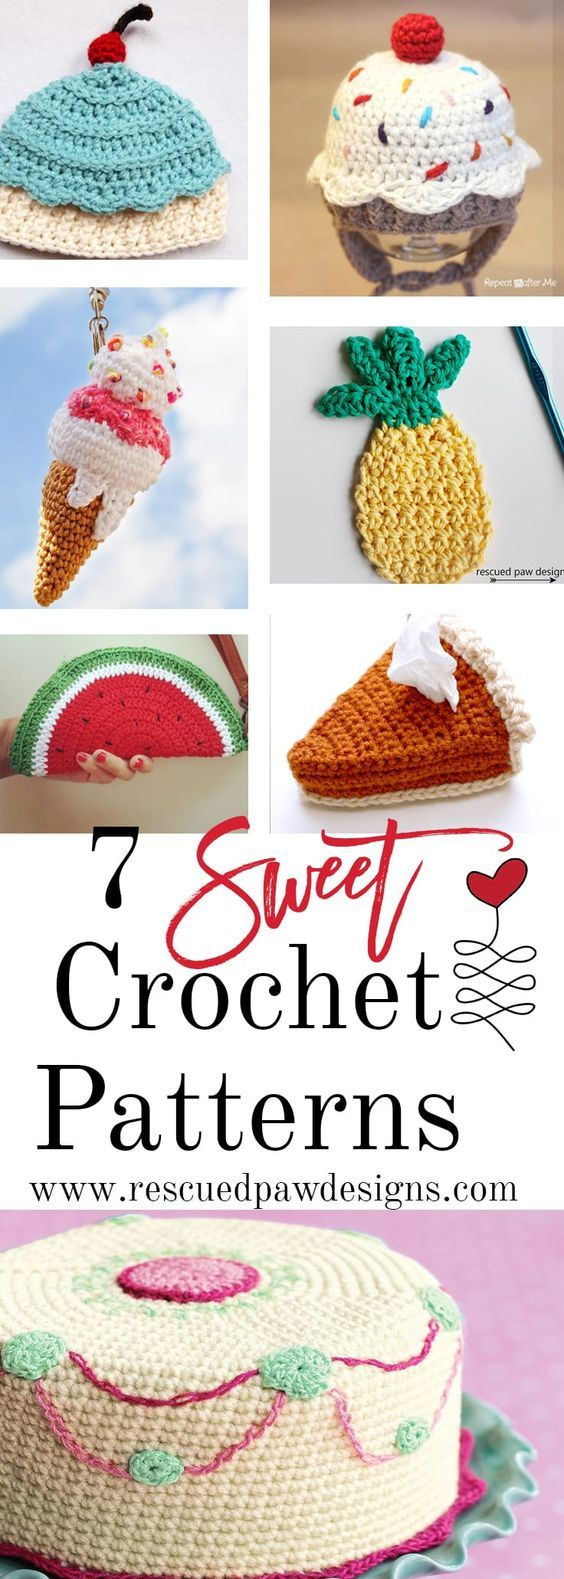 696 best crocheted food images on pinterest patterns animal and 7 sweet crochet patterns including crochet food patterns crochet cupcake hat patterns crochet pie patterns and much more compiled by rescued paw designs bankloansurffo Images